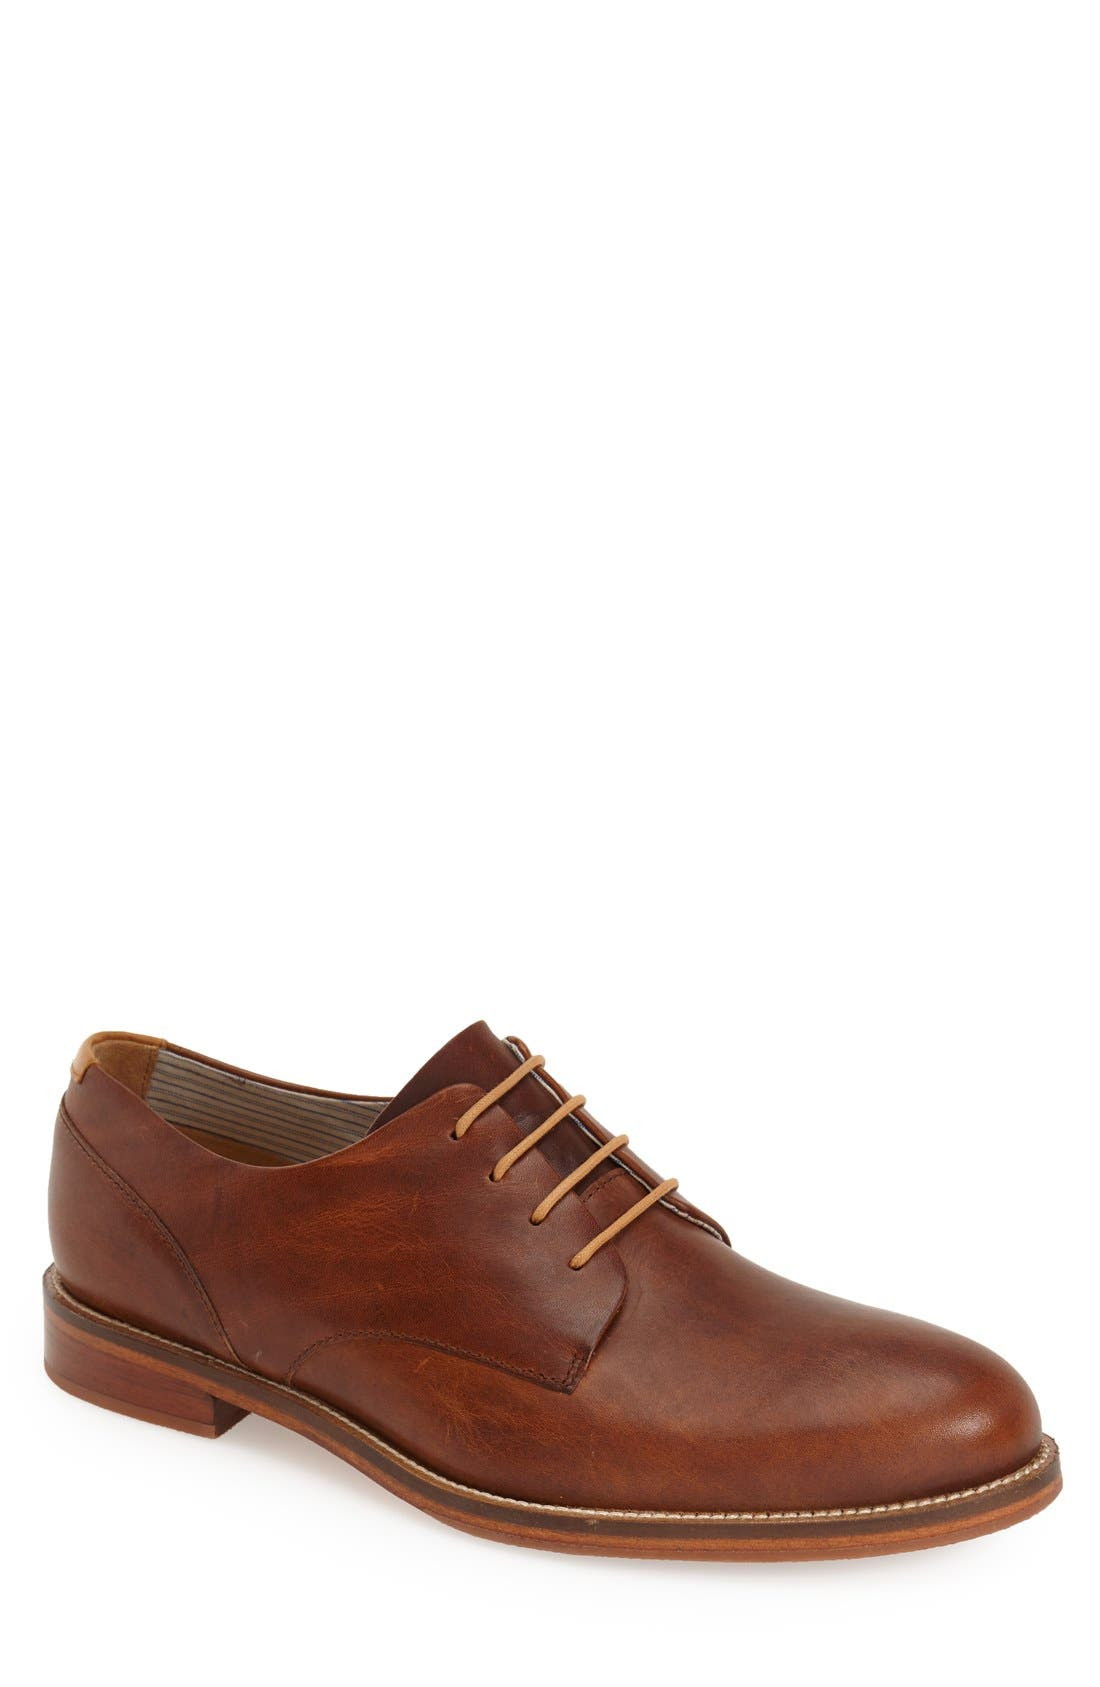 J SHOES 'William Plus' Plain Toe Derby (Men)